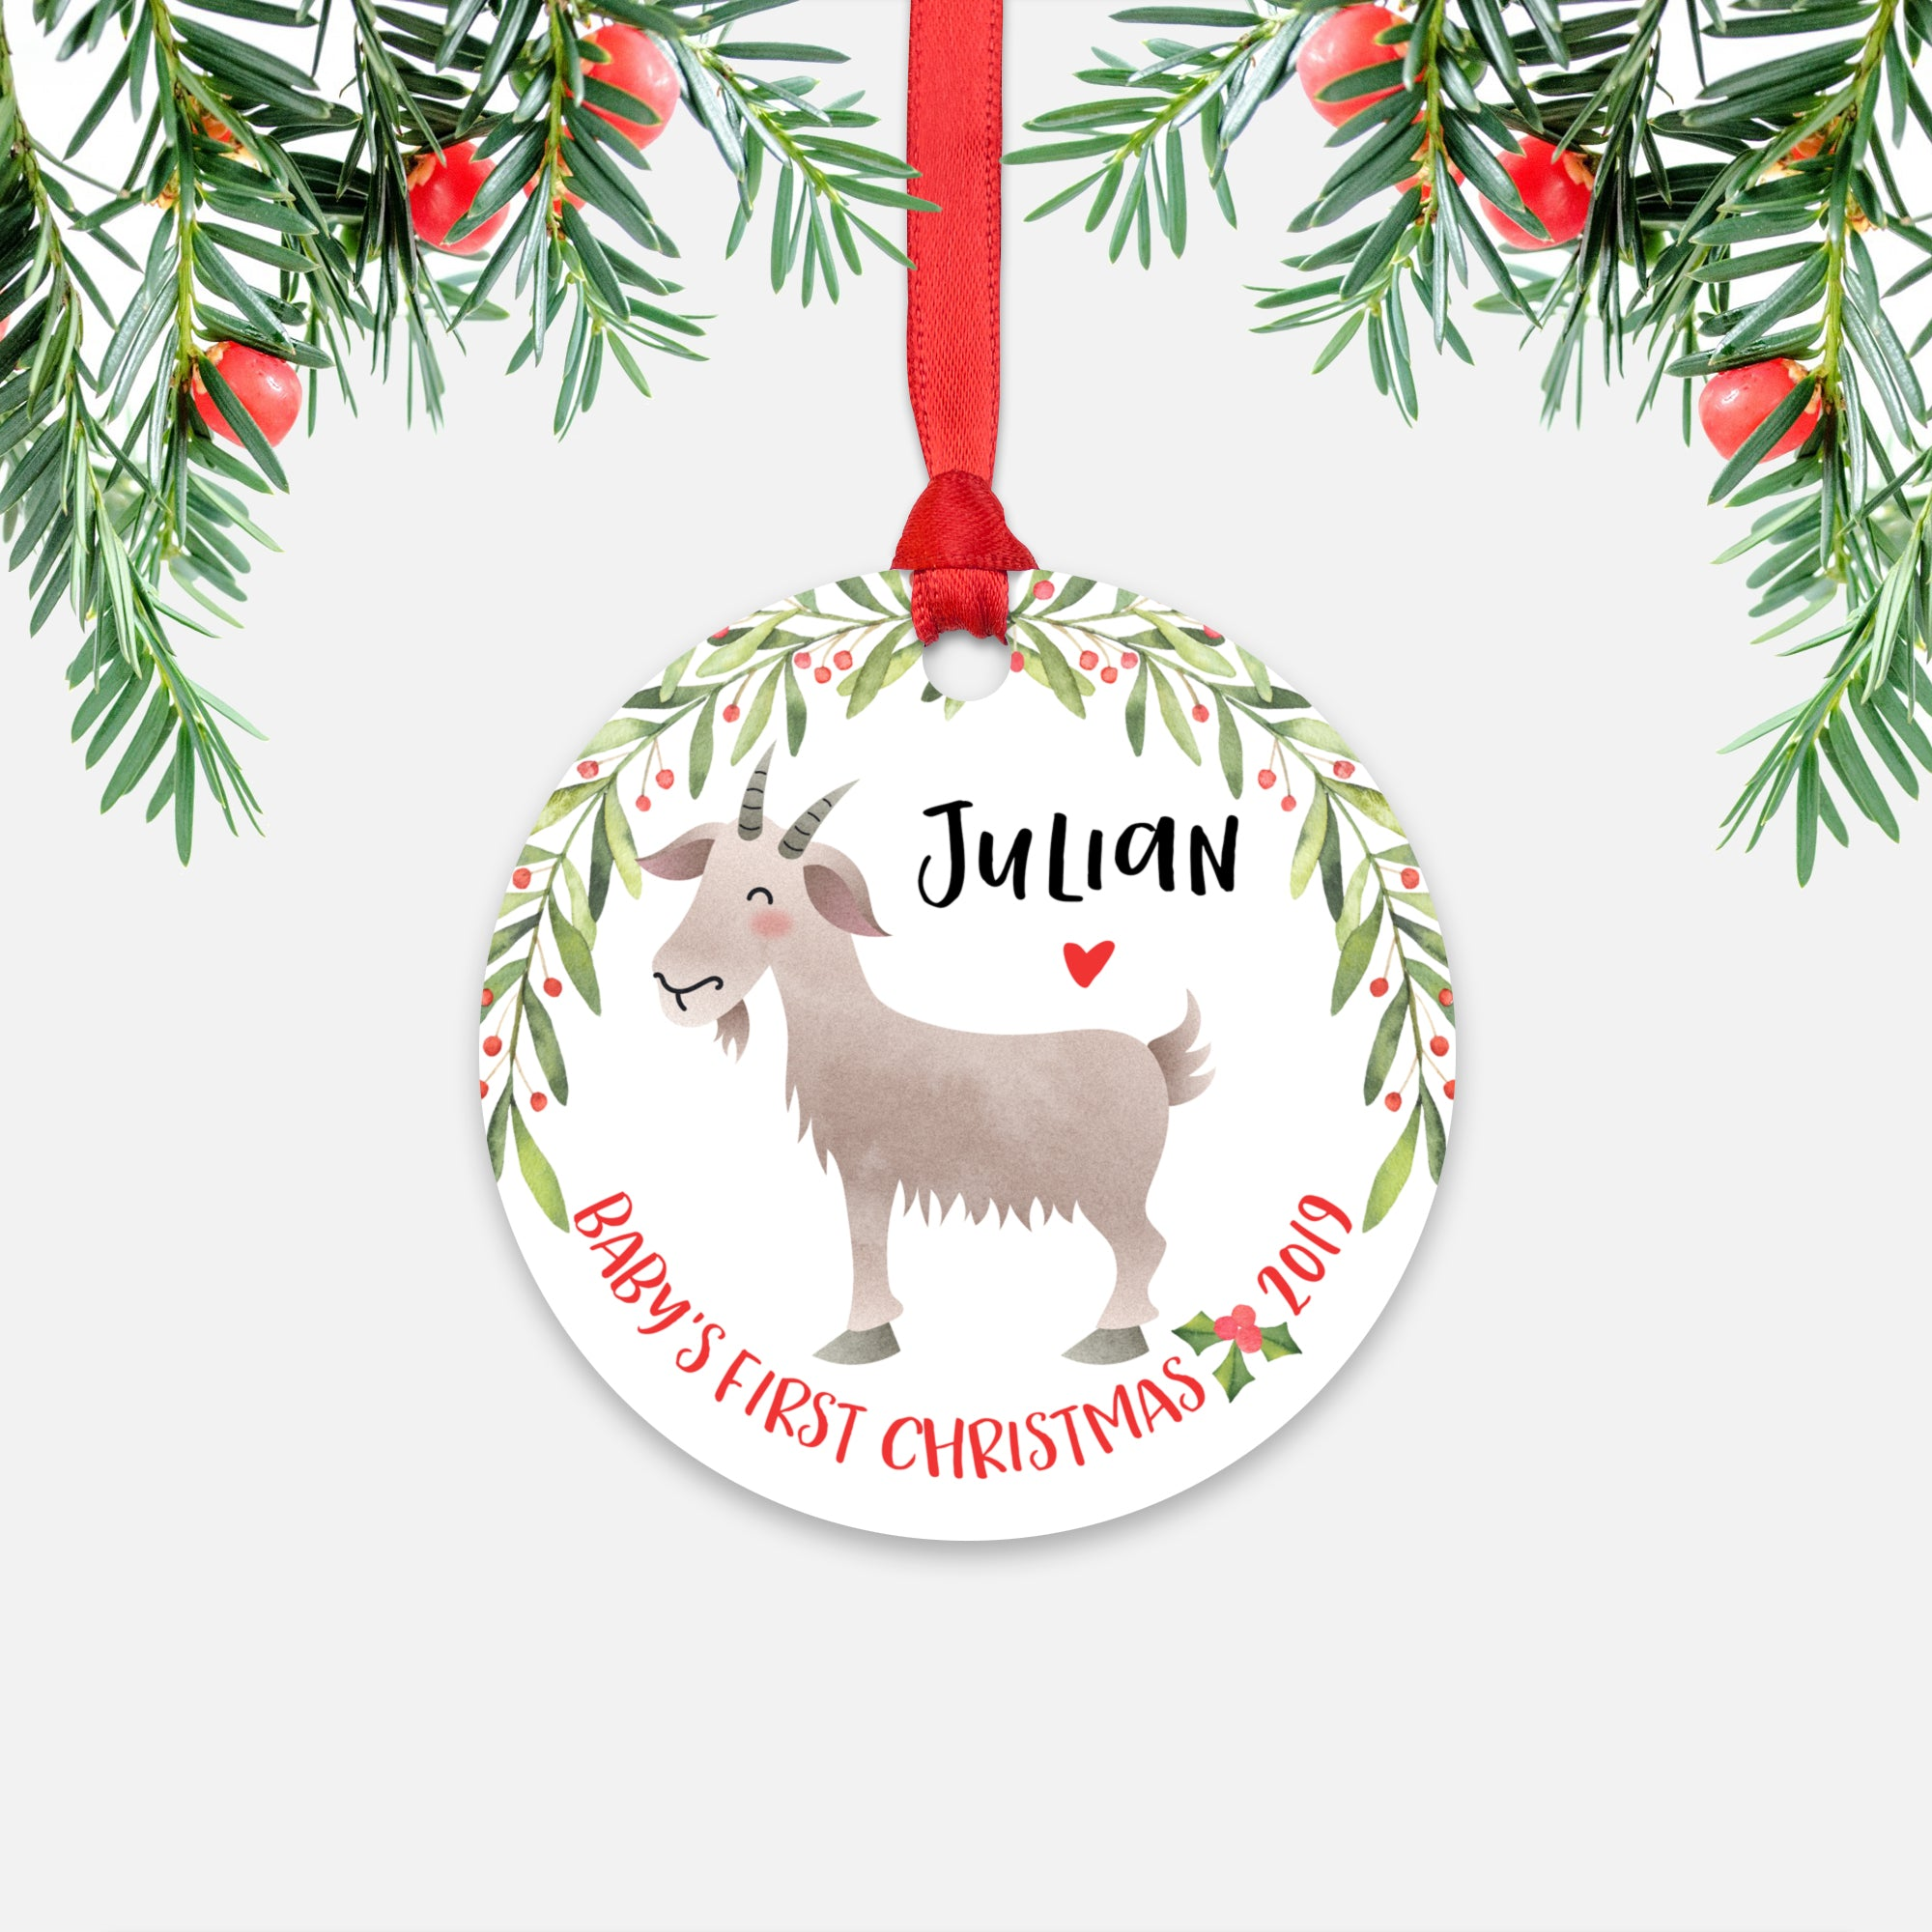 Goat Personalized Baby's First Christmas Ornament for Baby Boy or Baby Girl - Cute Farm Animal Baby 1st Holidays Decoration - Custom Christmas Gift Idea for New Parents - Round Aluminum - by Happy Cat Prints